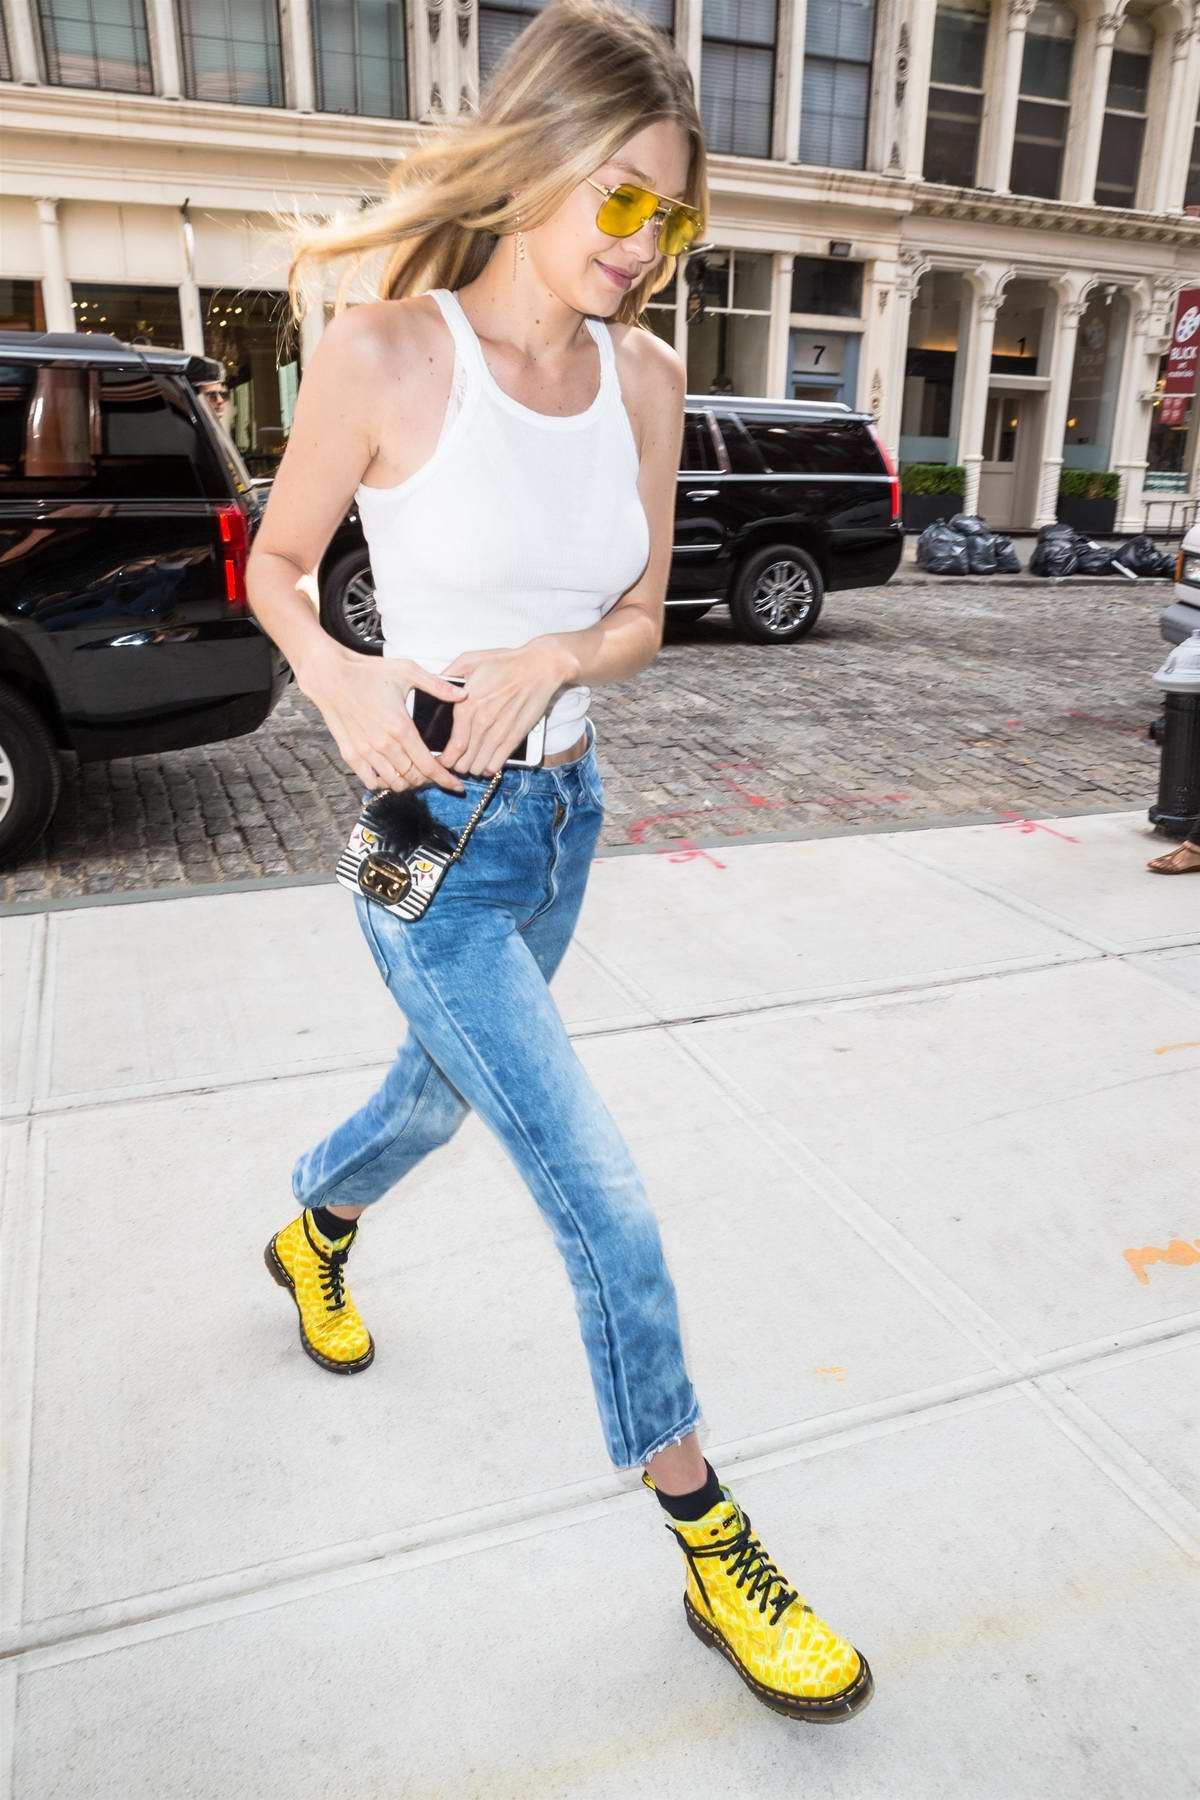 202d18c3 gigi hadid in a white tank top and jeans leaving a hair salon new  york-260617_7